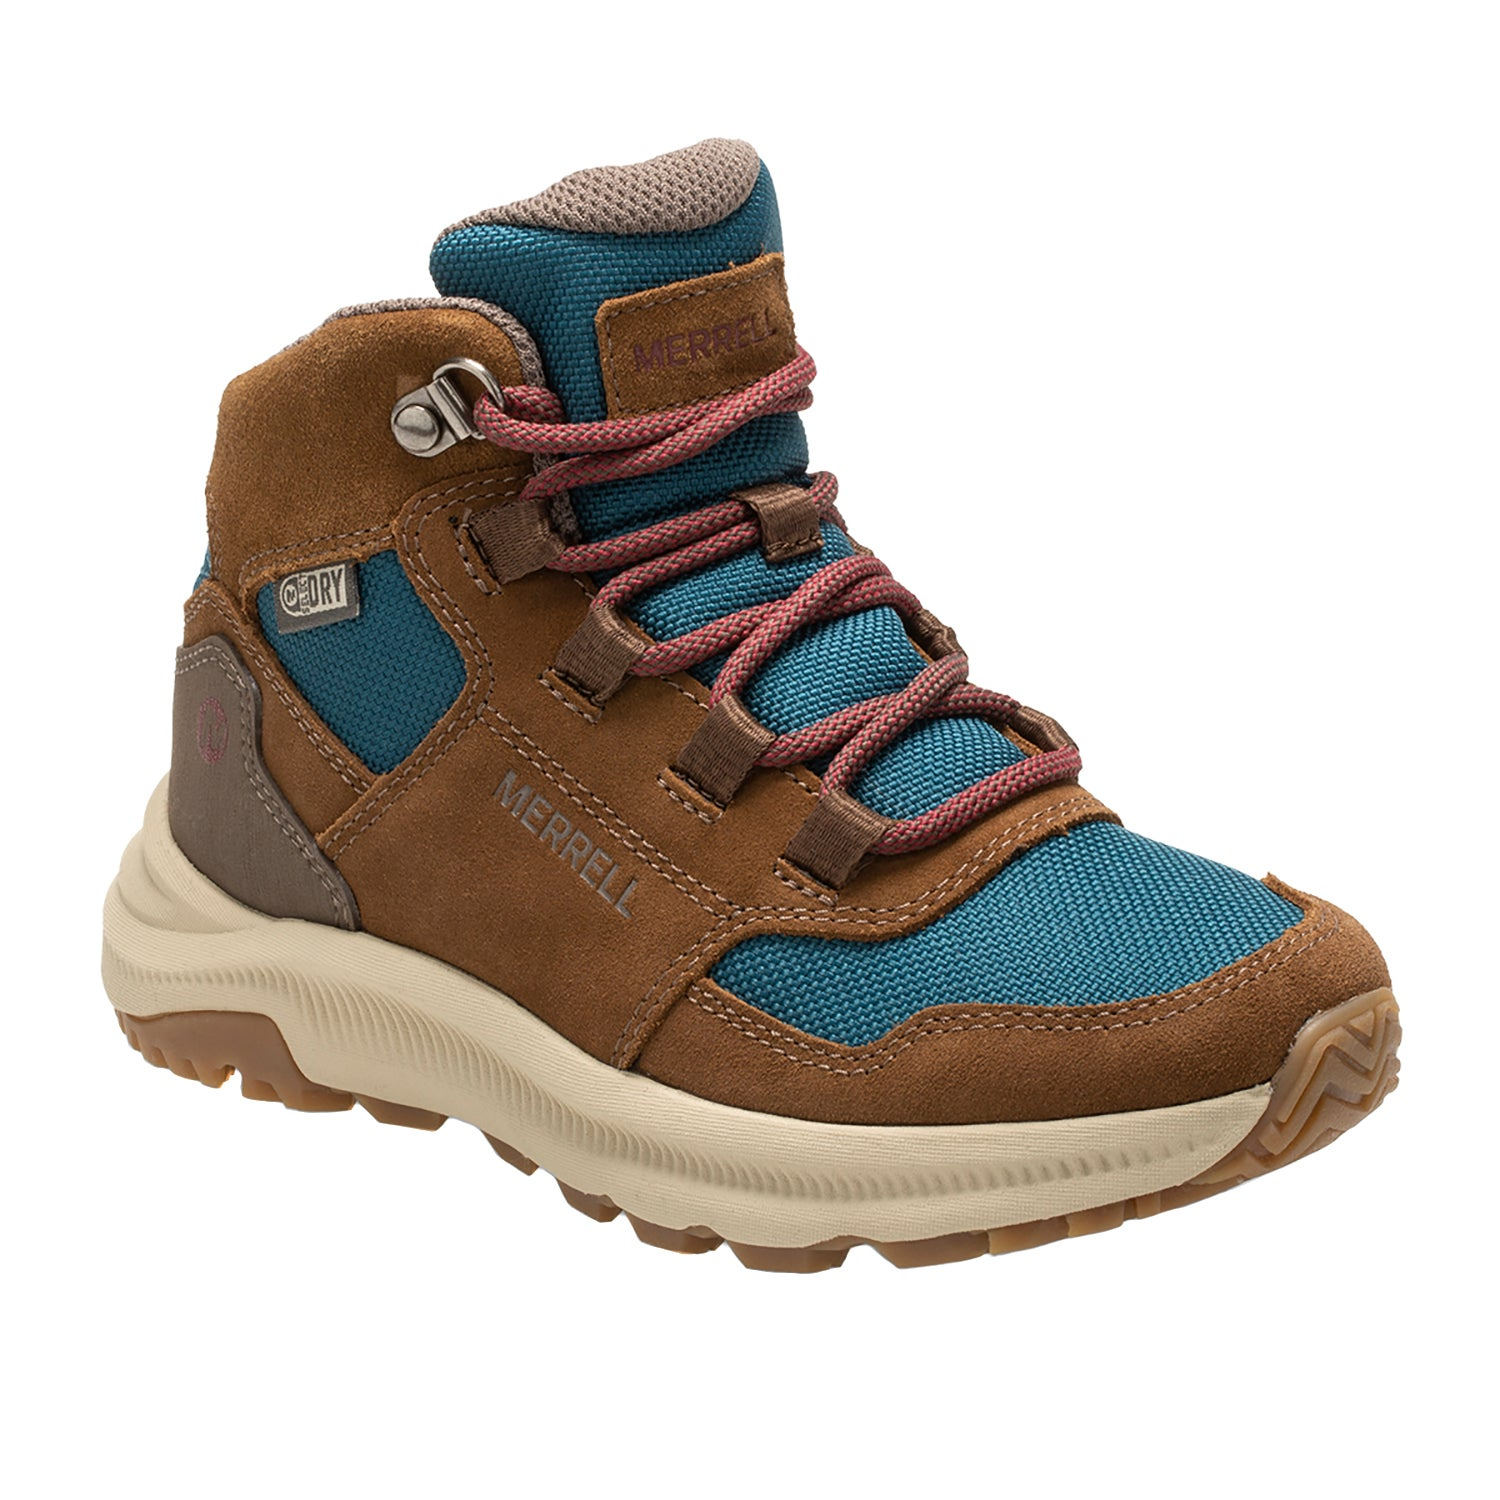 Merrell Moab 2 Mid Wtpf Kids Boots Walking Boot Grey Periwinkle All Sizes